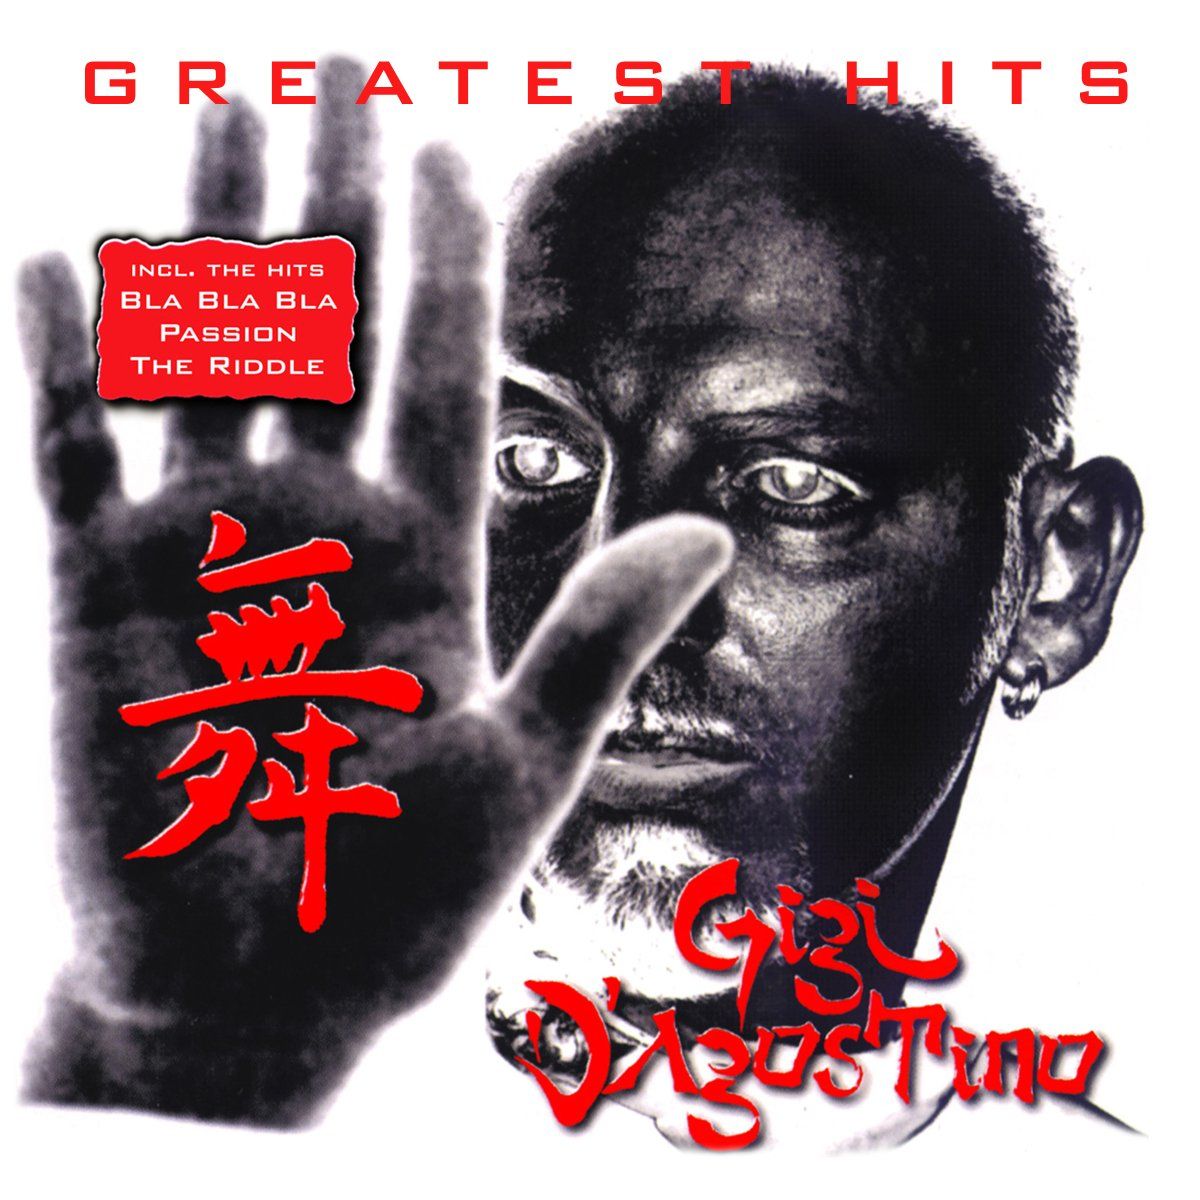 Жижи Д'Агостино Gigi D'Agostino. Greatest Hits (2 LP) journey journey greatest hits 2 lp